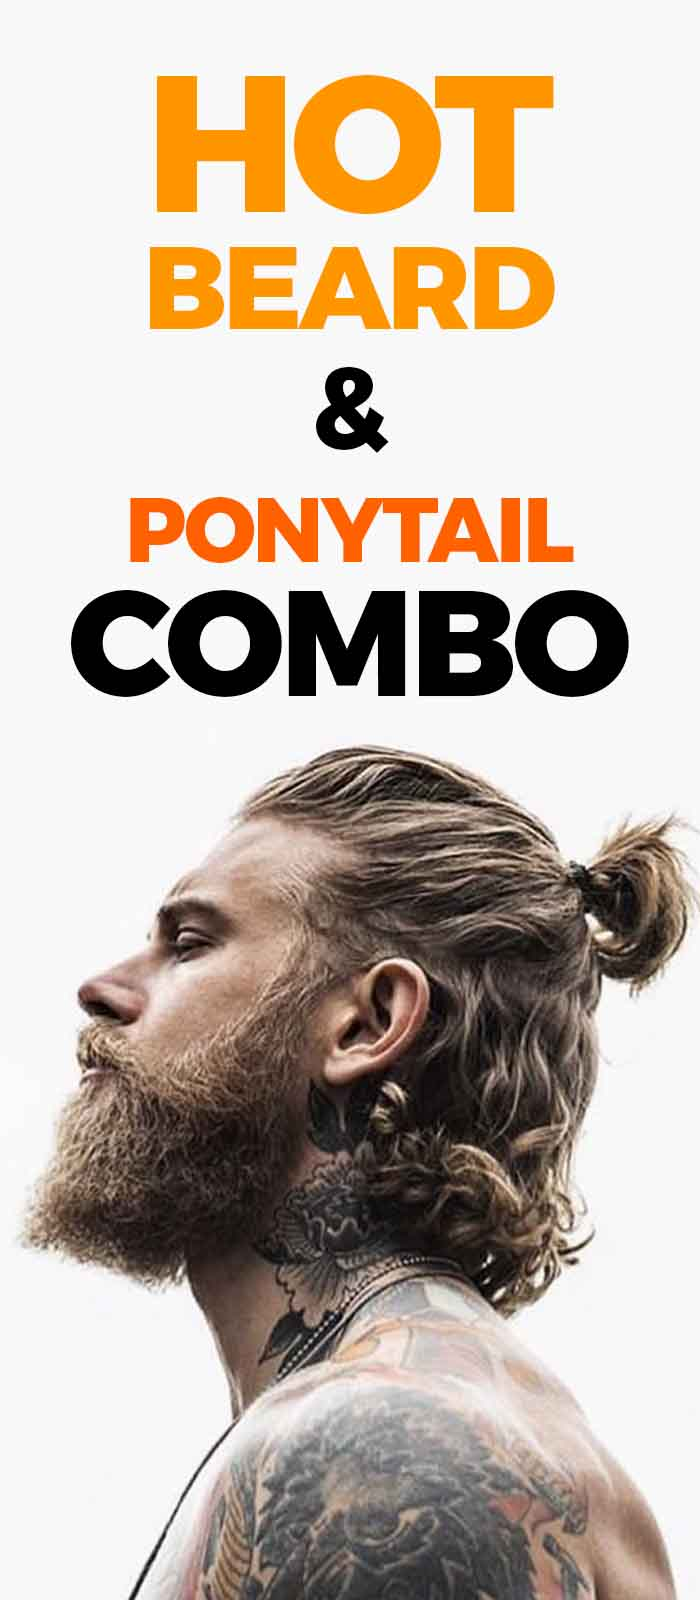 Short Ponytail With beard for men!